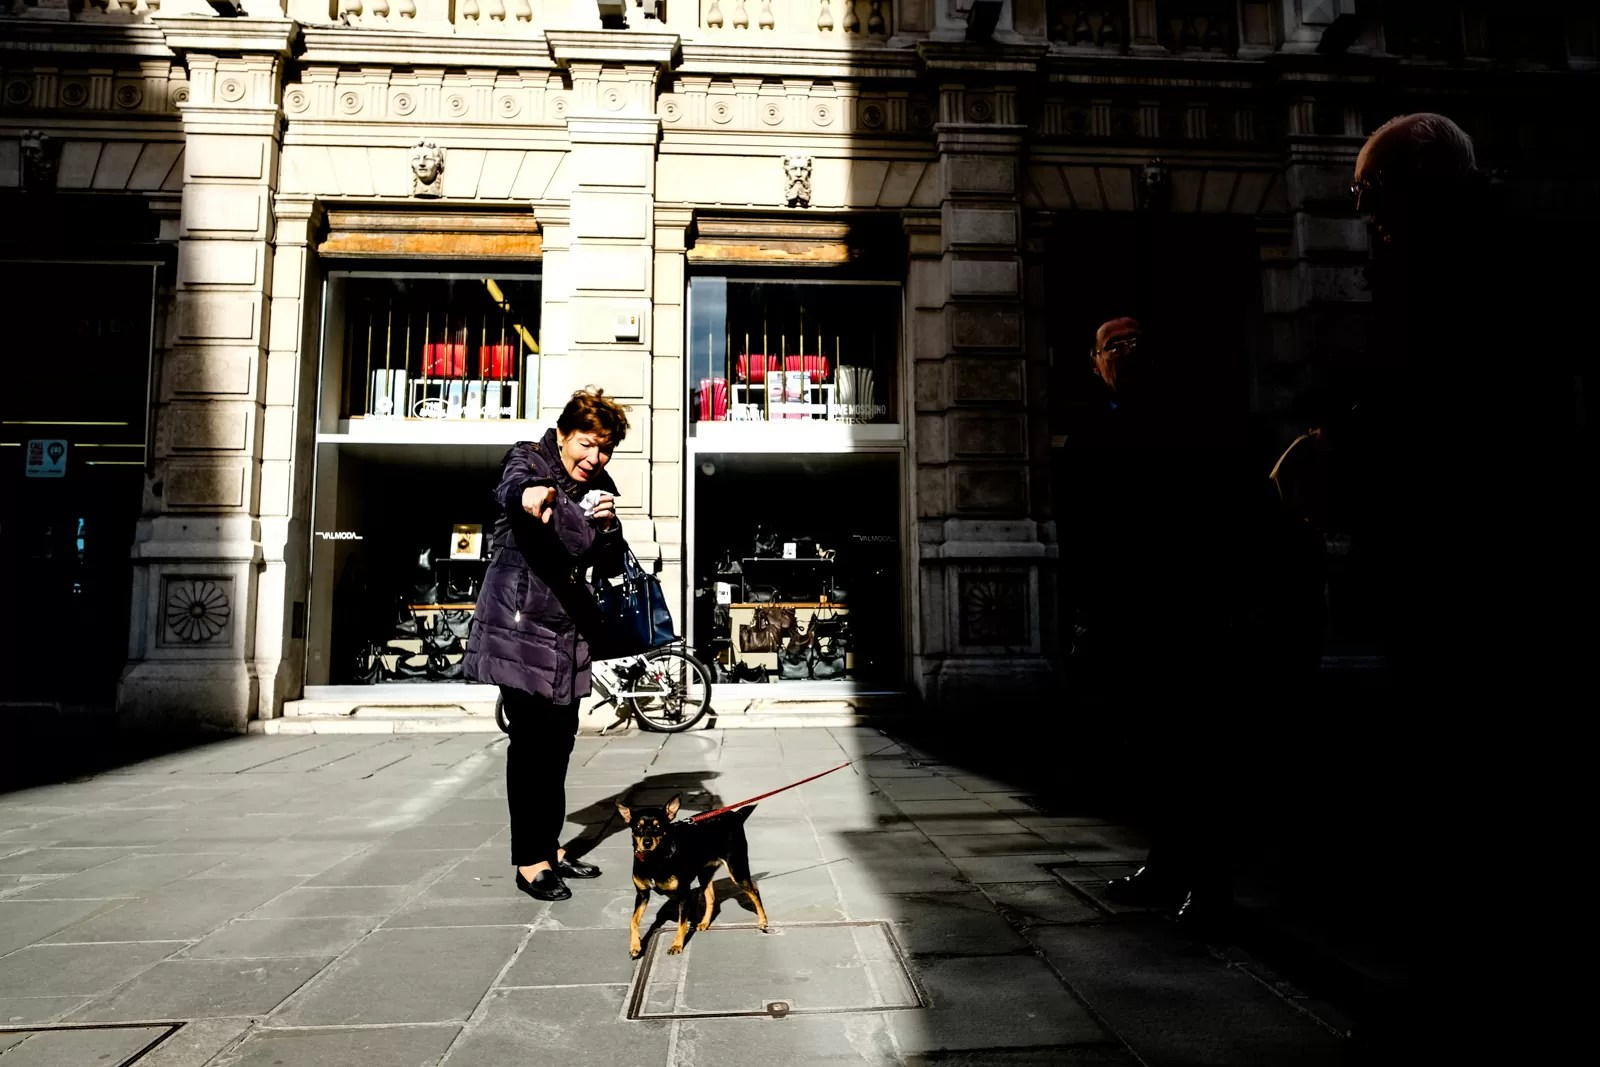 DSCF3217 - One Day in Trieste [Color Street Photography] - fotostreet.it